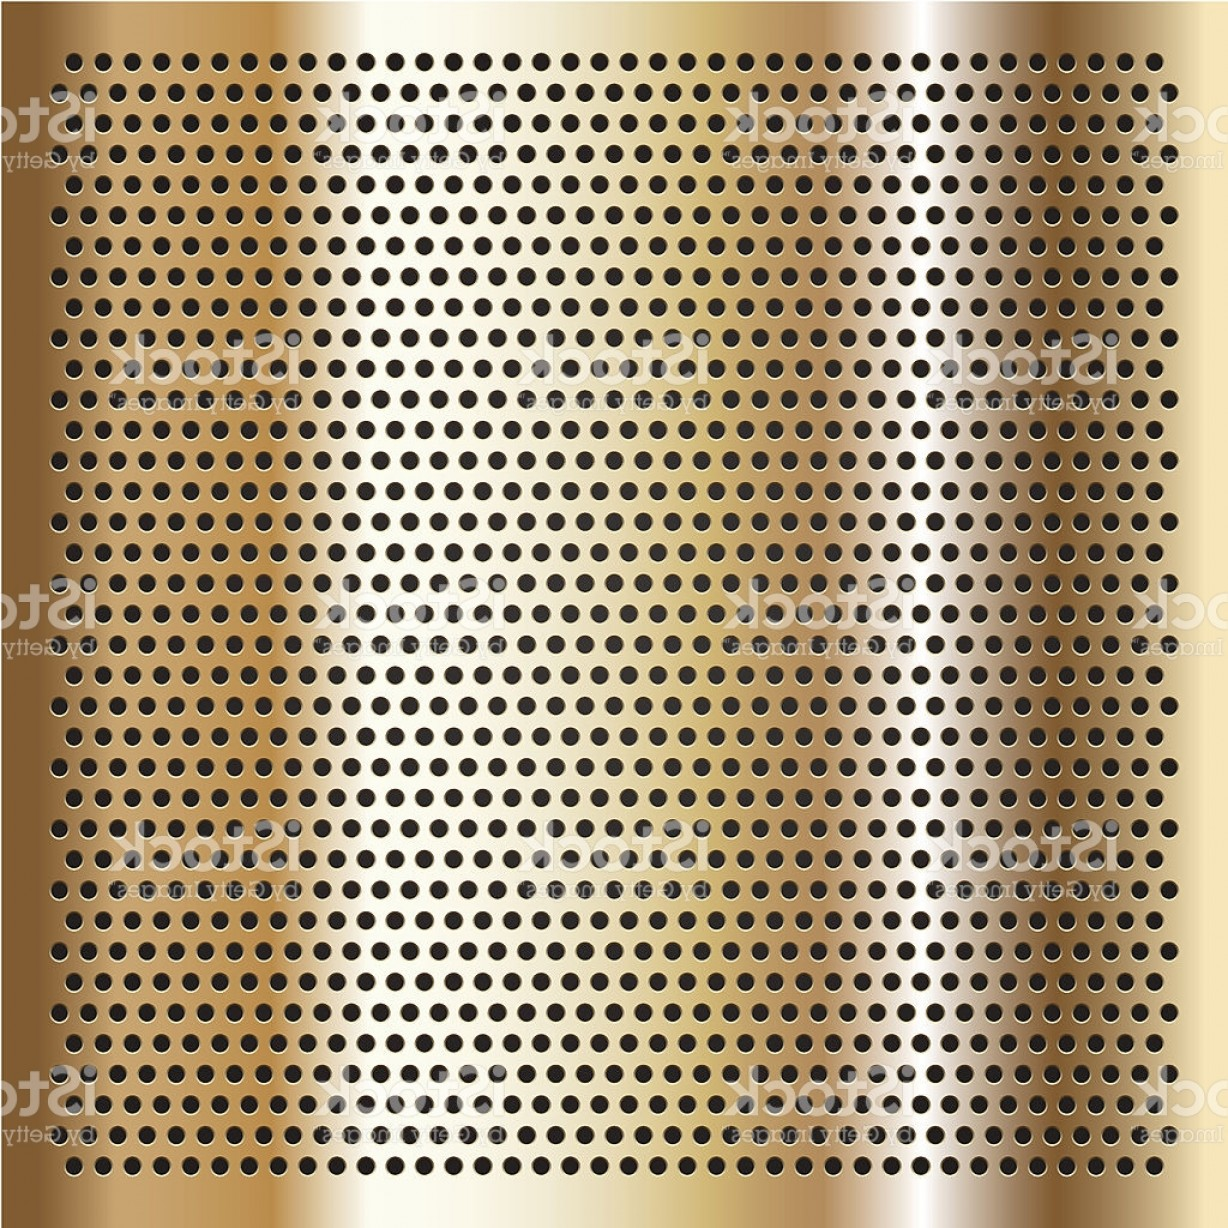 Sheet Metal Effect Vector: Gold Background Perforated Sheet Gm